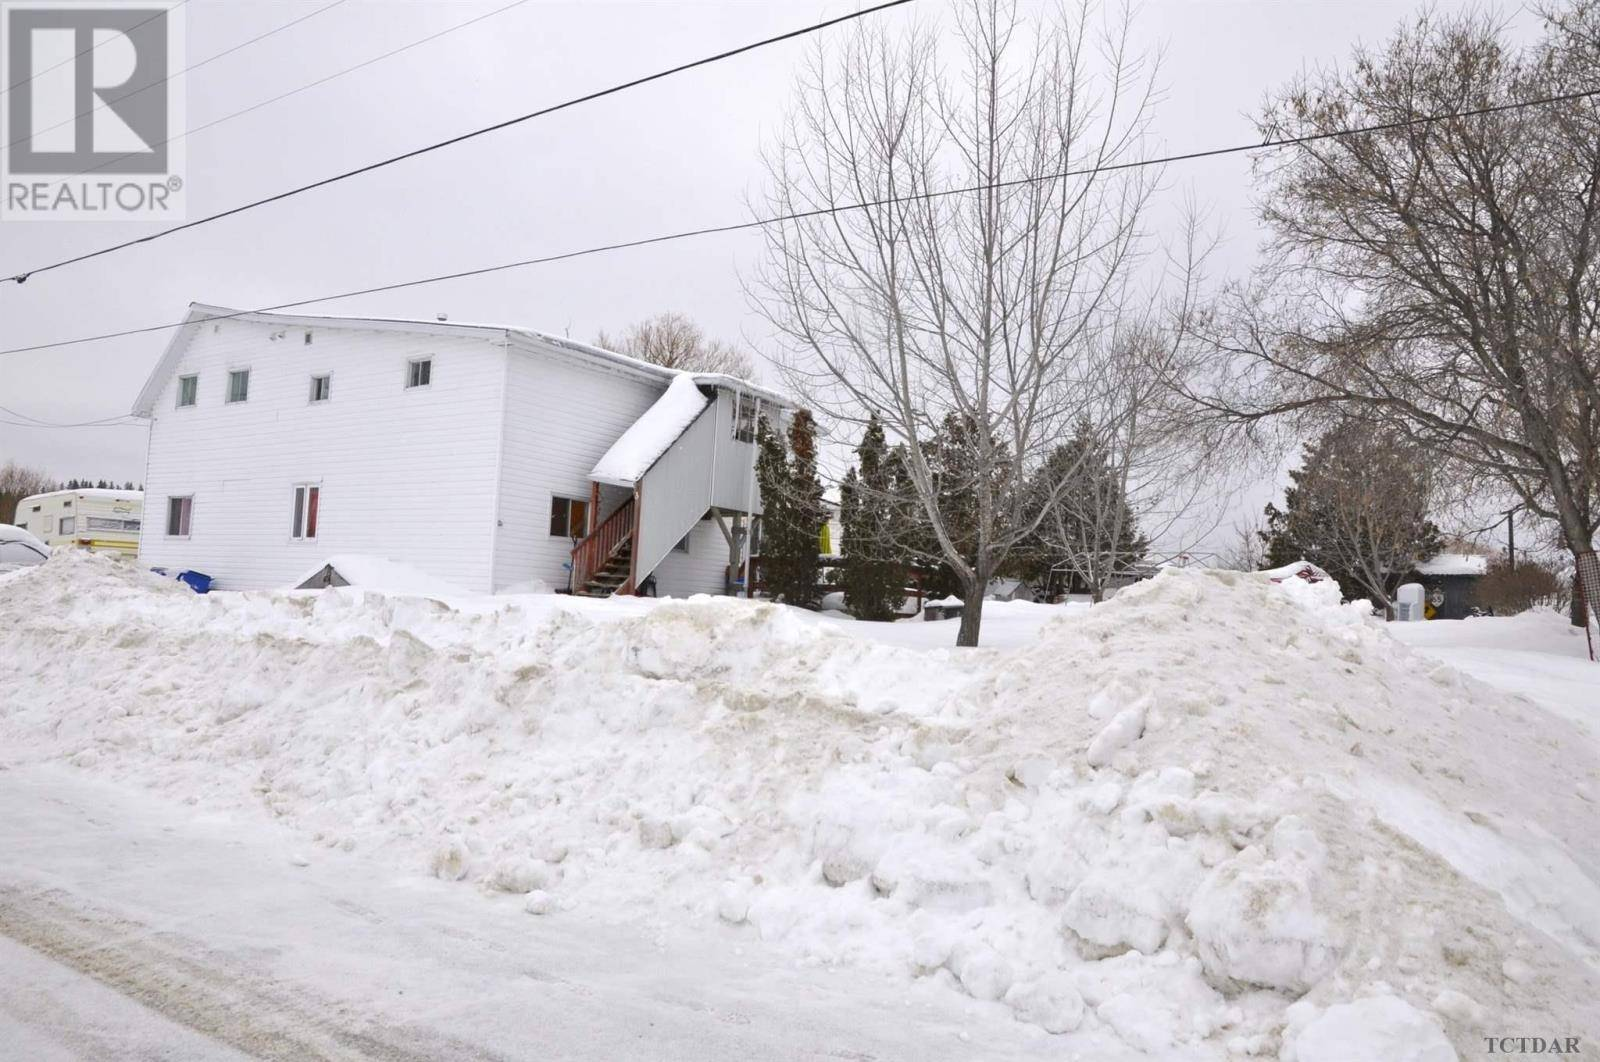 Townhouse for sale at 45 Birch St S Temiskaming Shores Ontario - MLS: TM200210